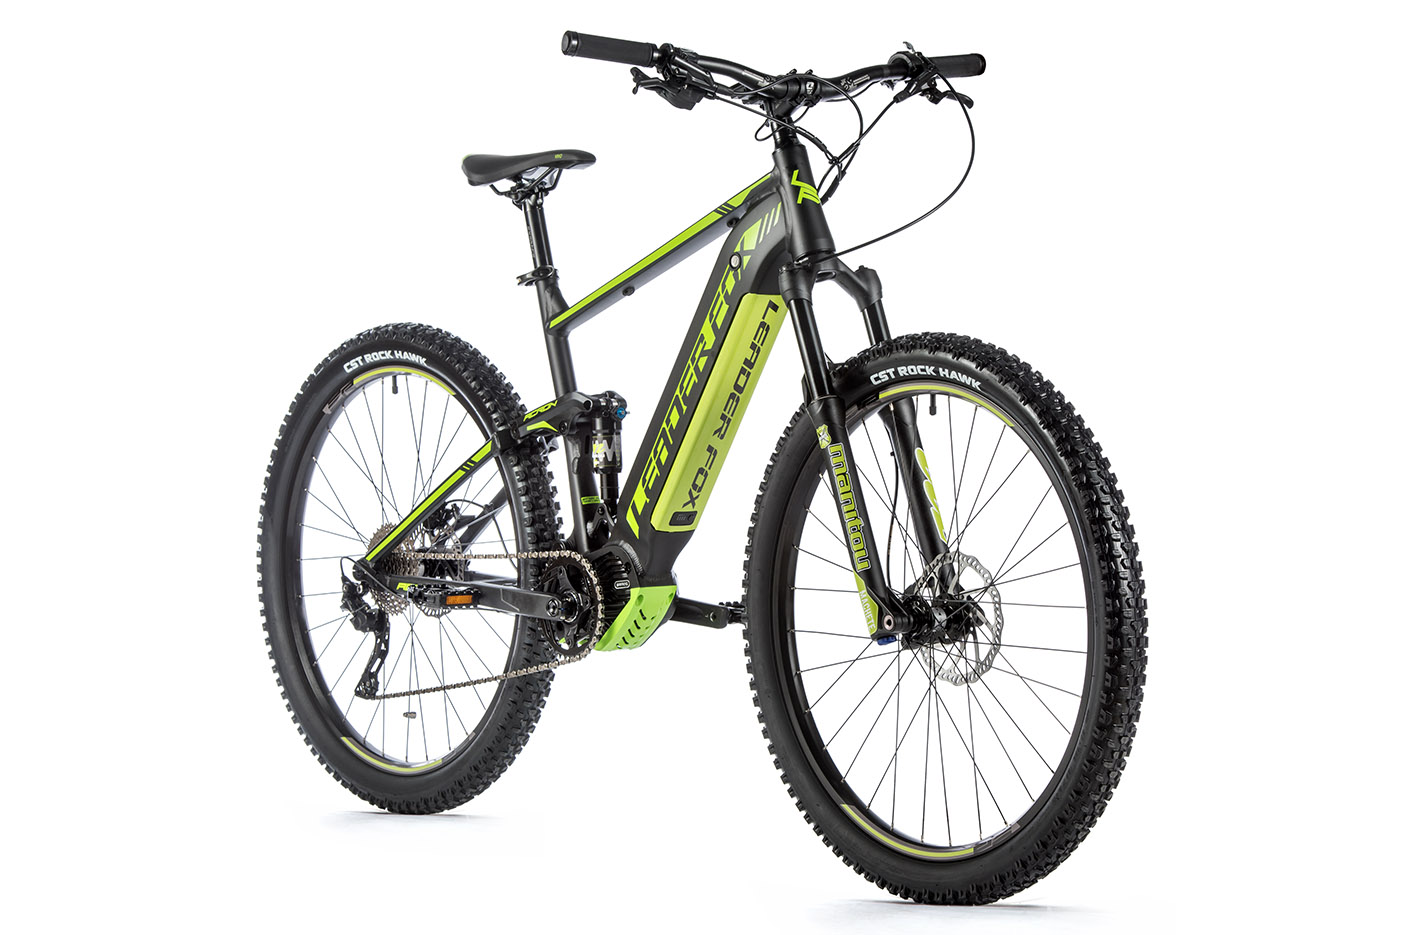 Bicicleta electrica MTB Full Suspension Leader Fox Acron 29 inch, 2020